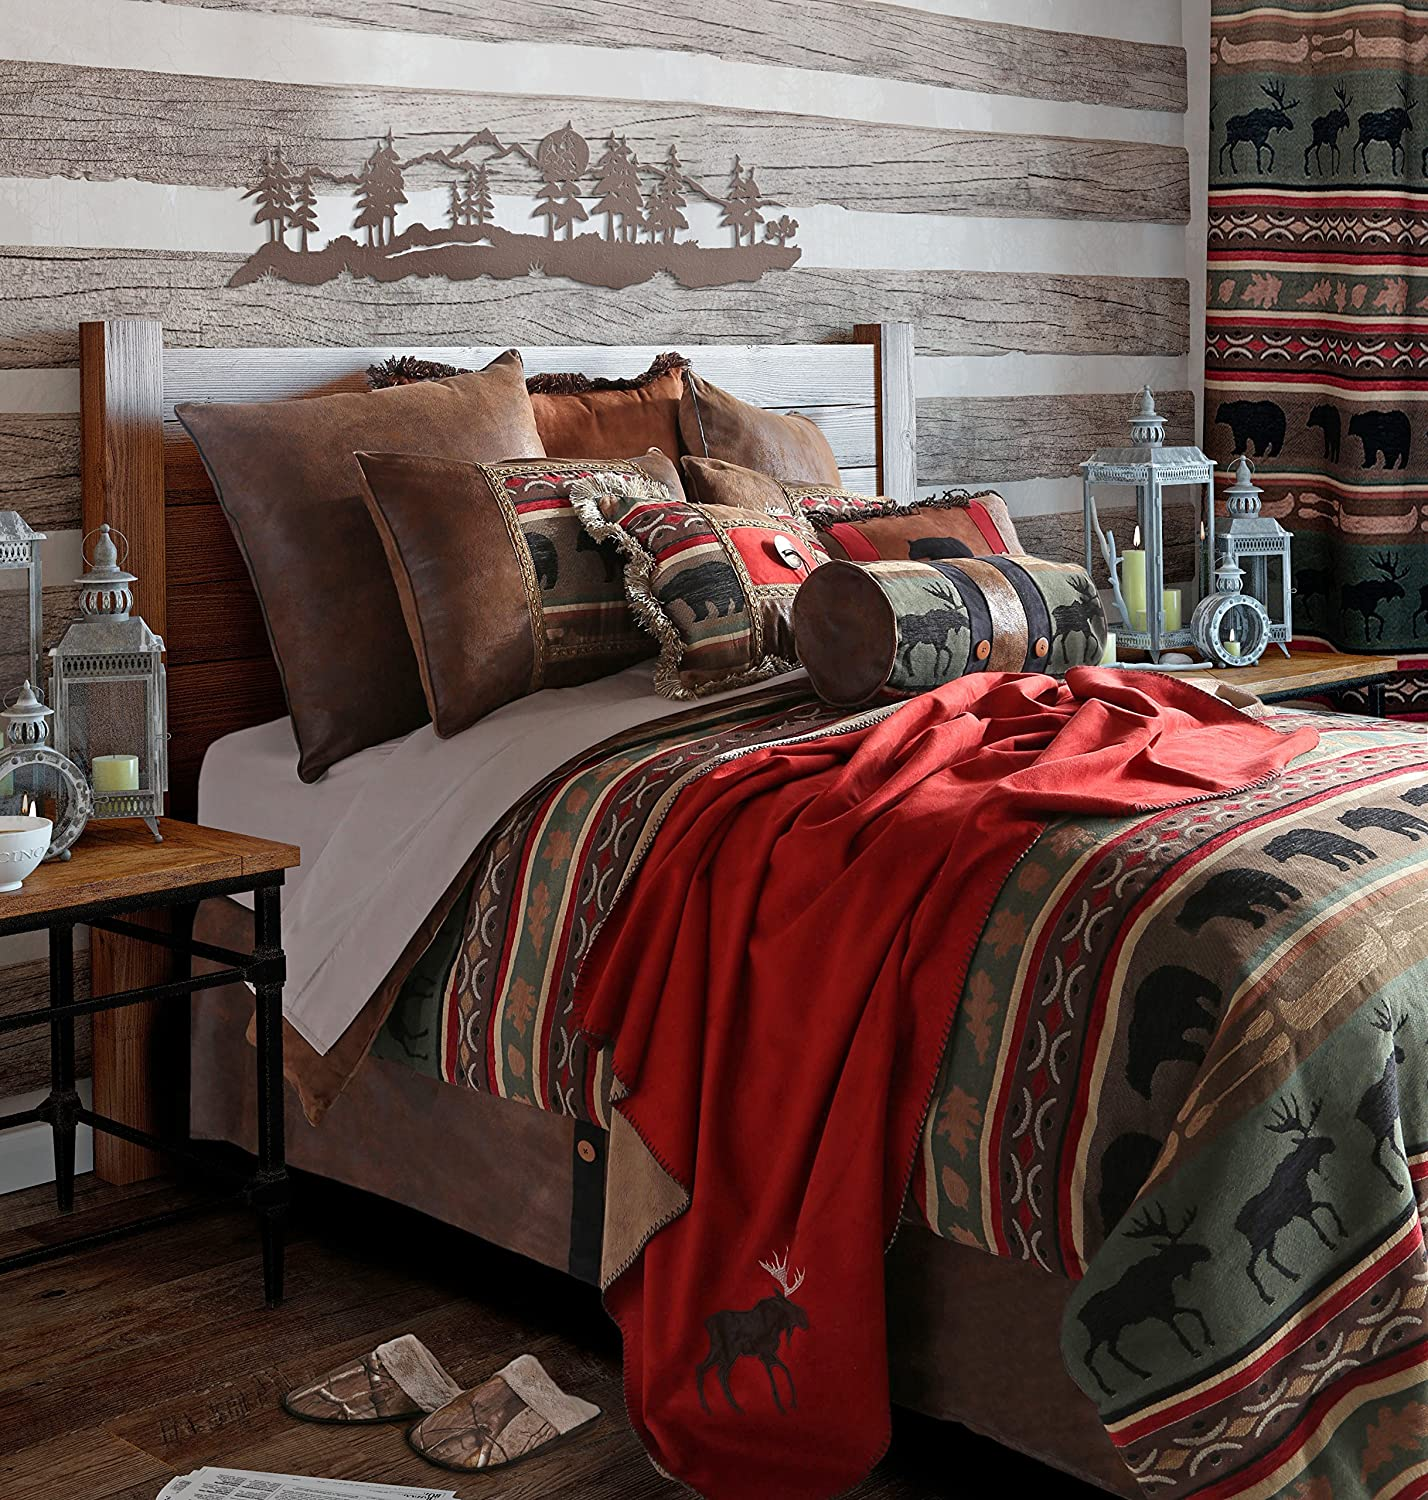 Rustic Western Southwestern Outdoors Cabin Inspired Comforter Set 5PC Backwoods (Queen